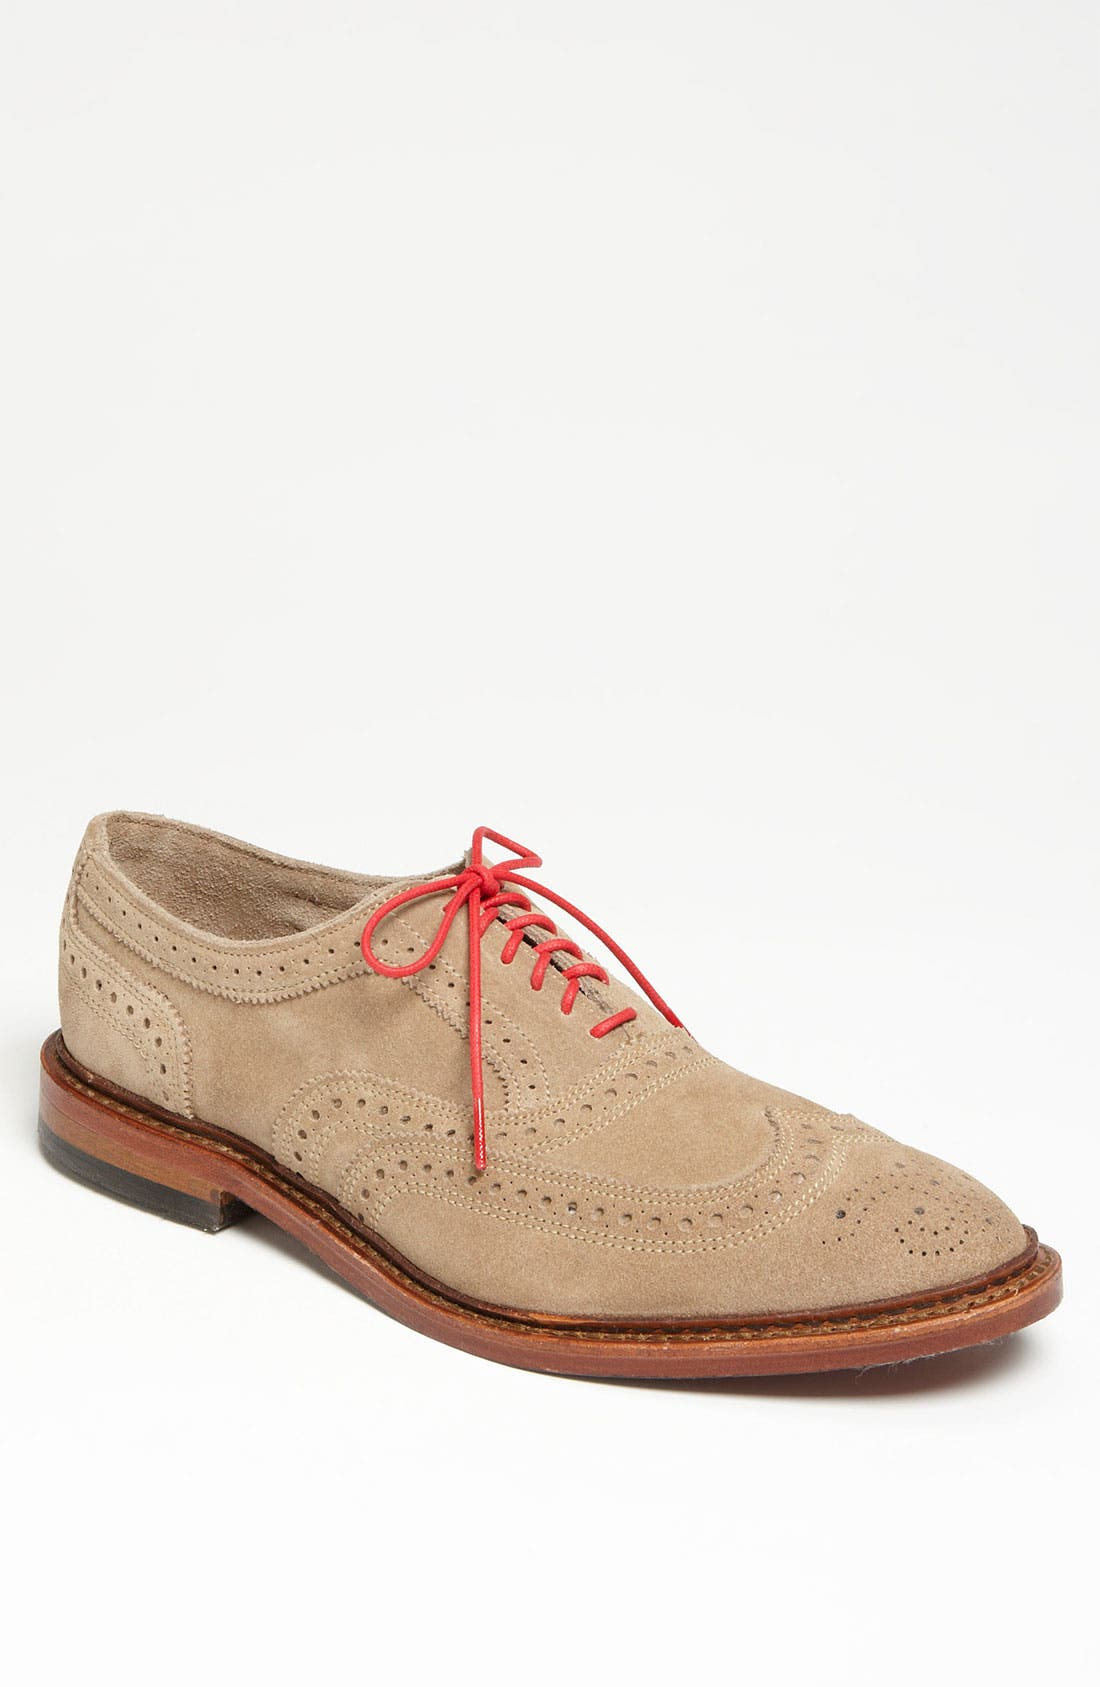 Alternate Image 1 Selected - Allen Edmonds 'Neumok' Oxford (Men)